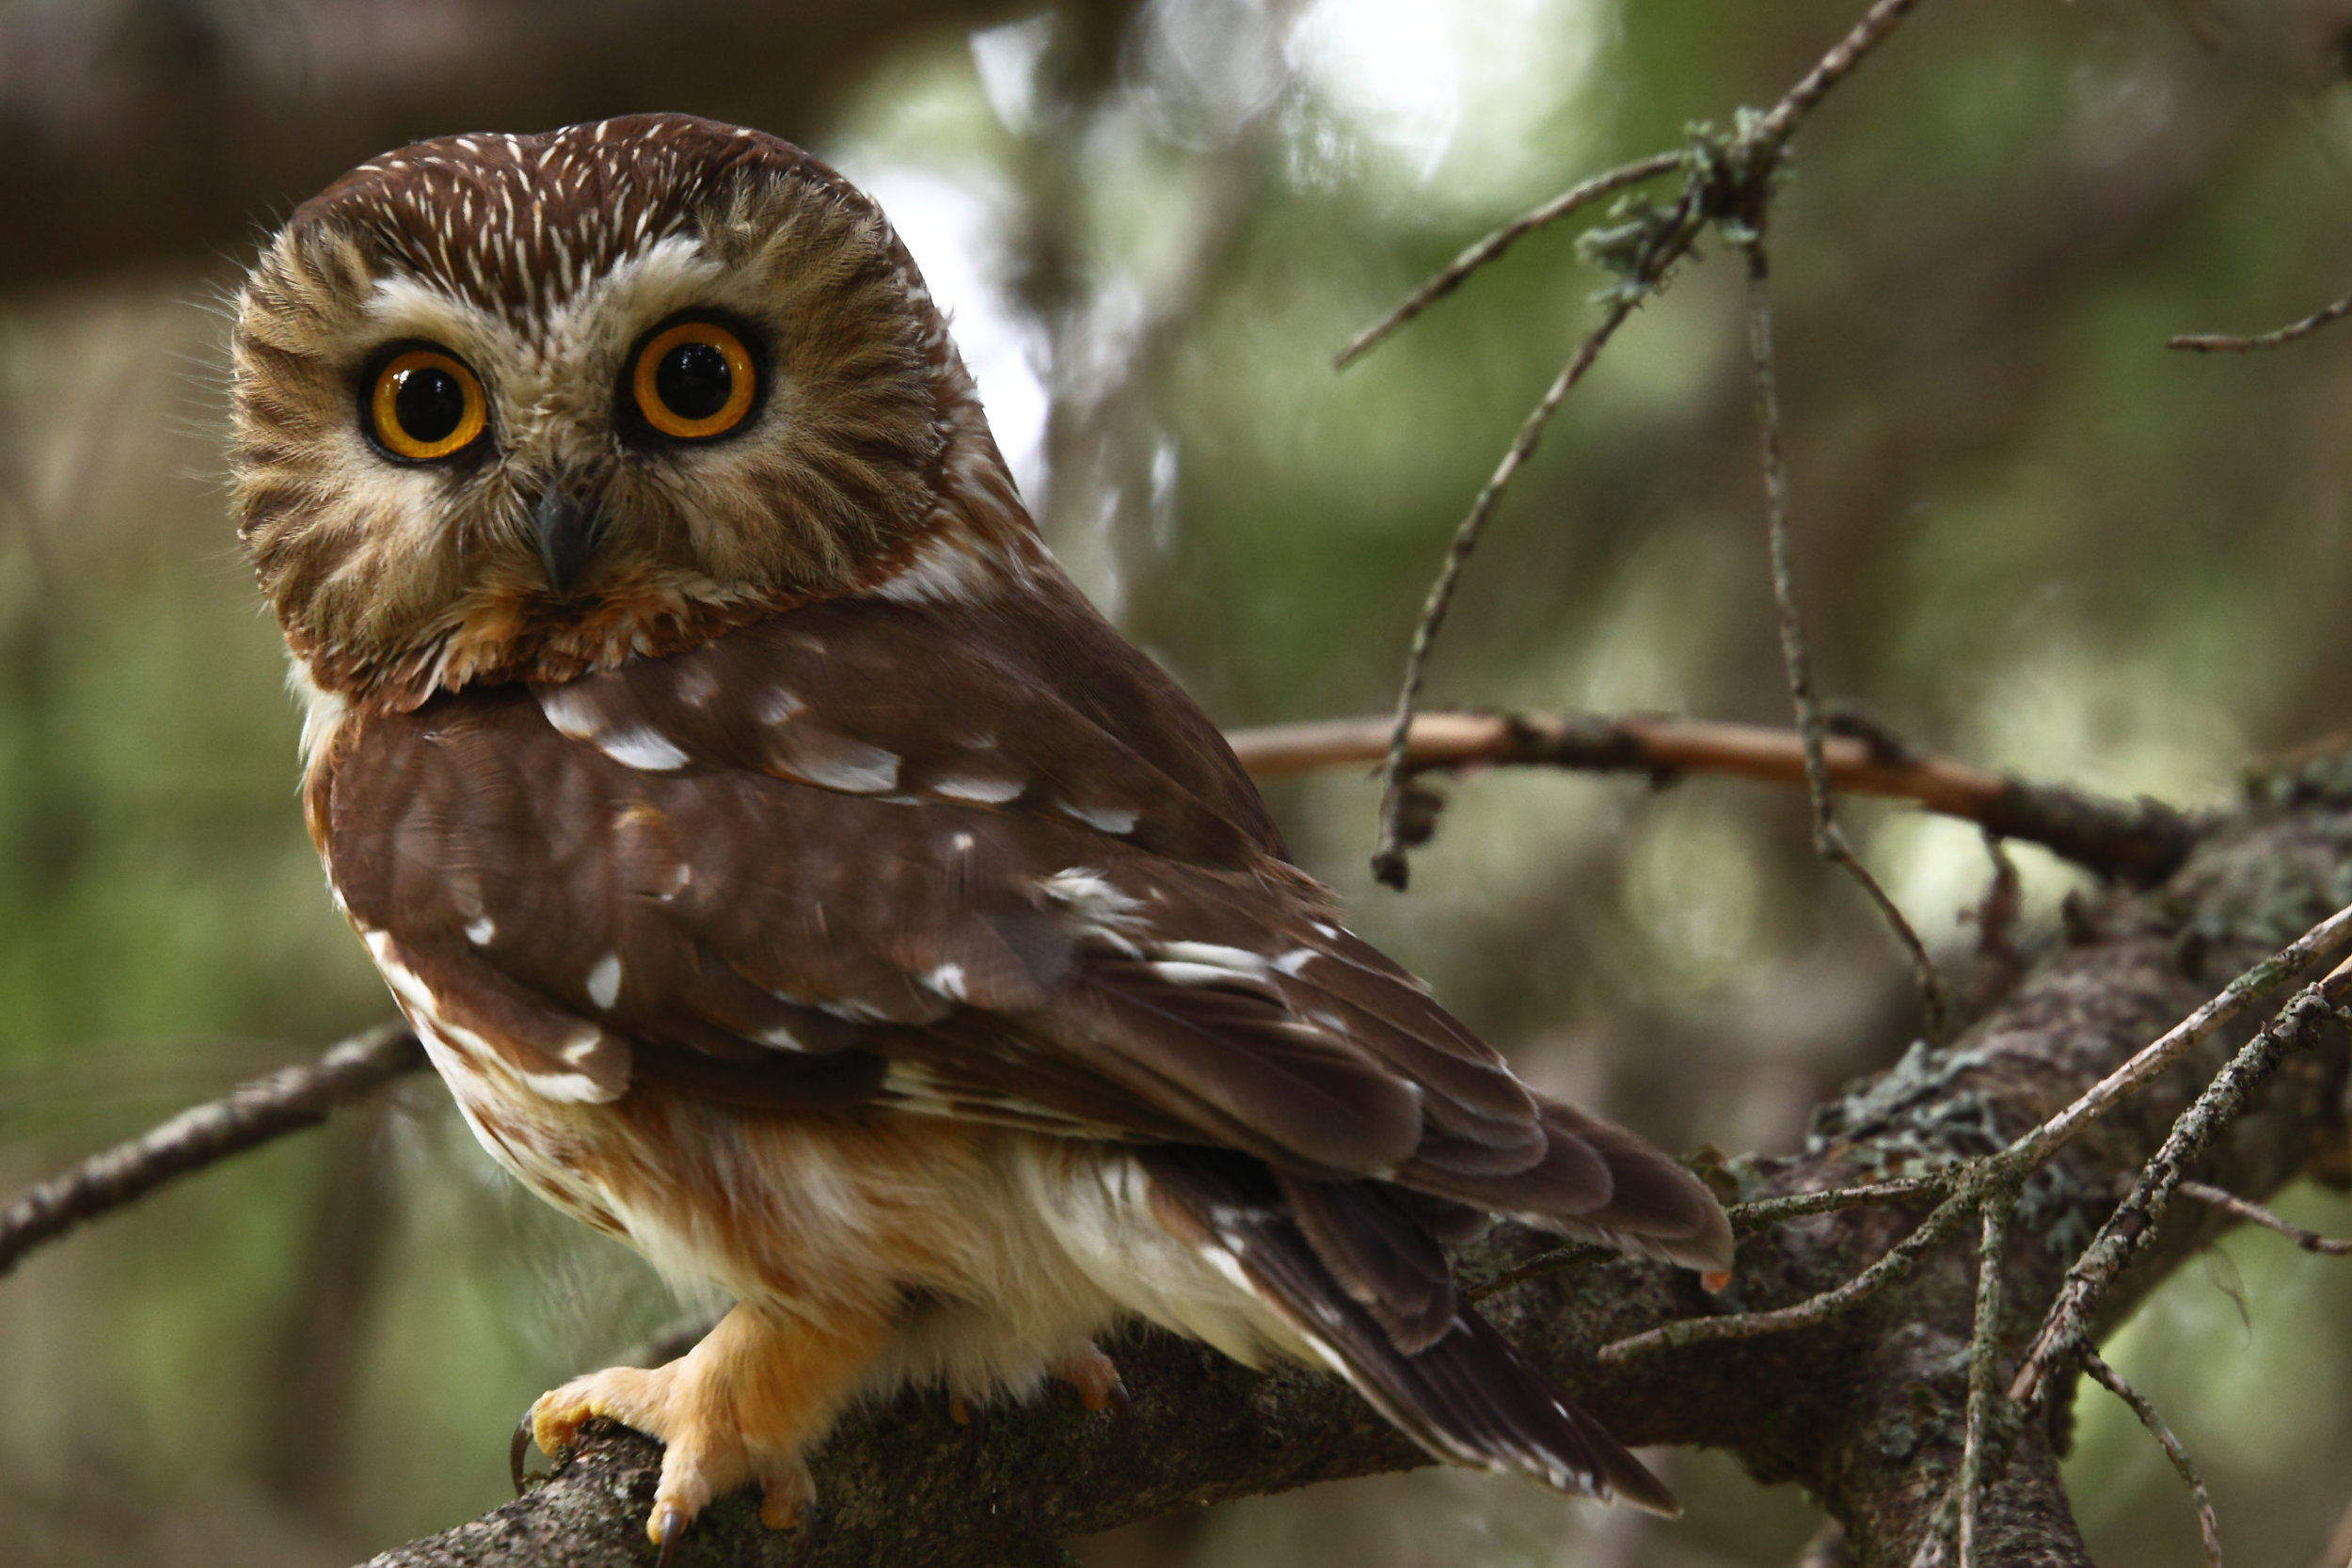 """- Northern Saw-whet Owl (Aegolius acadicus)Northern Saw-whet Owls live in coniferous forests, mixed forests, and deciduous forests. They weigh about 2.3-5.3 oz. with a wingspan of 16.5-18.9 in. Northern Saw-whet owls allopreen, which is taking care of one another's feathers. Northern Saw-whets eat voles, mice, shrews, squirrels, small birds, and insects. Common calls of the Northern Saw-whet include """"too-too-too"""" and a """"tsst"""" noise. They are protected on the US Migratory Bird lists.Photo Credits: Kameron Perensovich"""